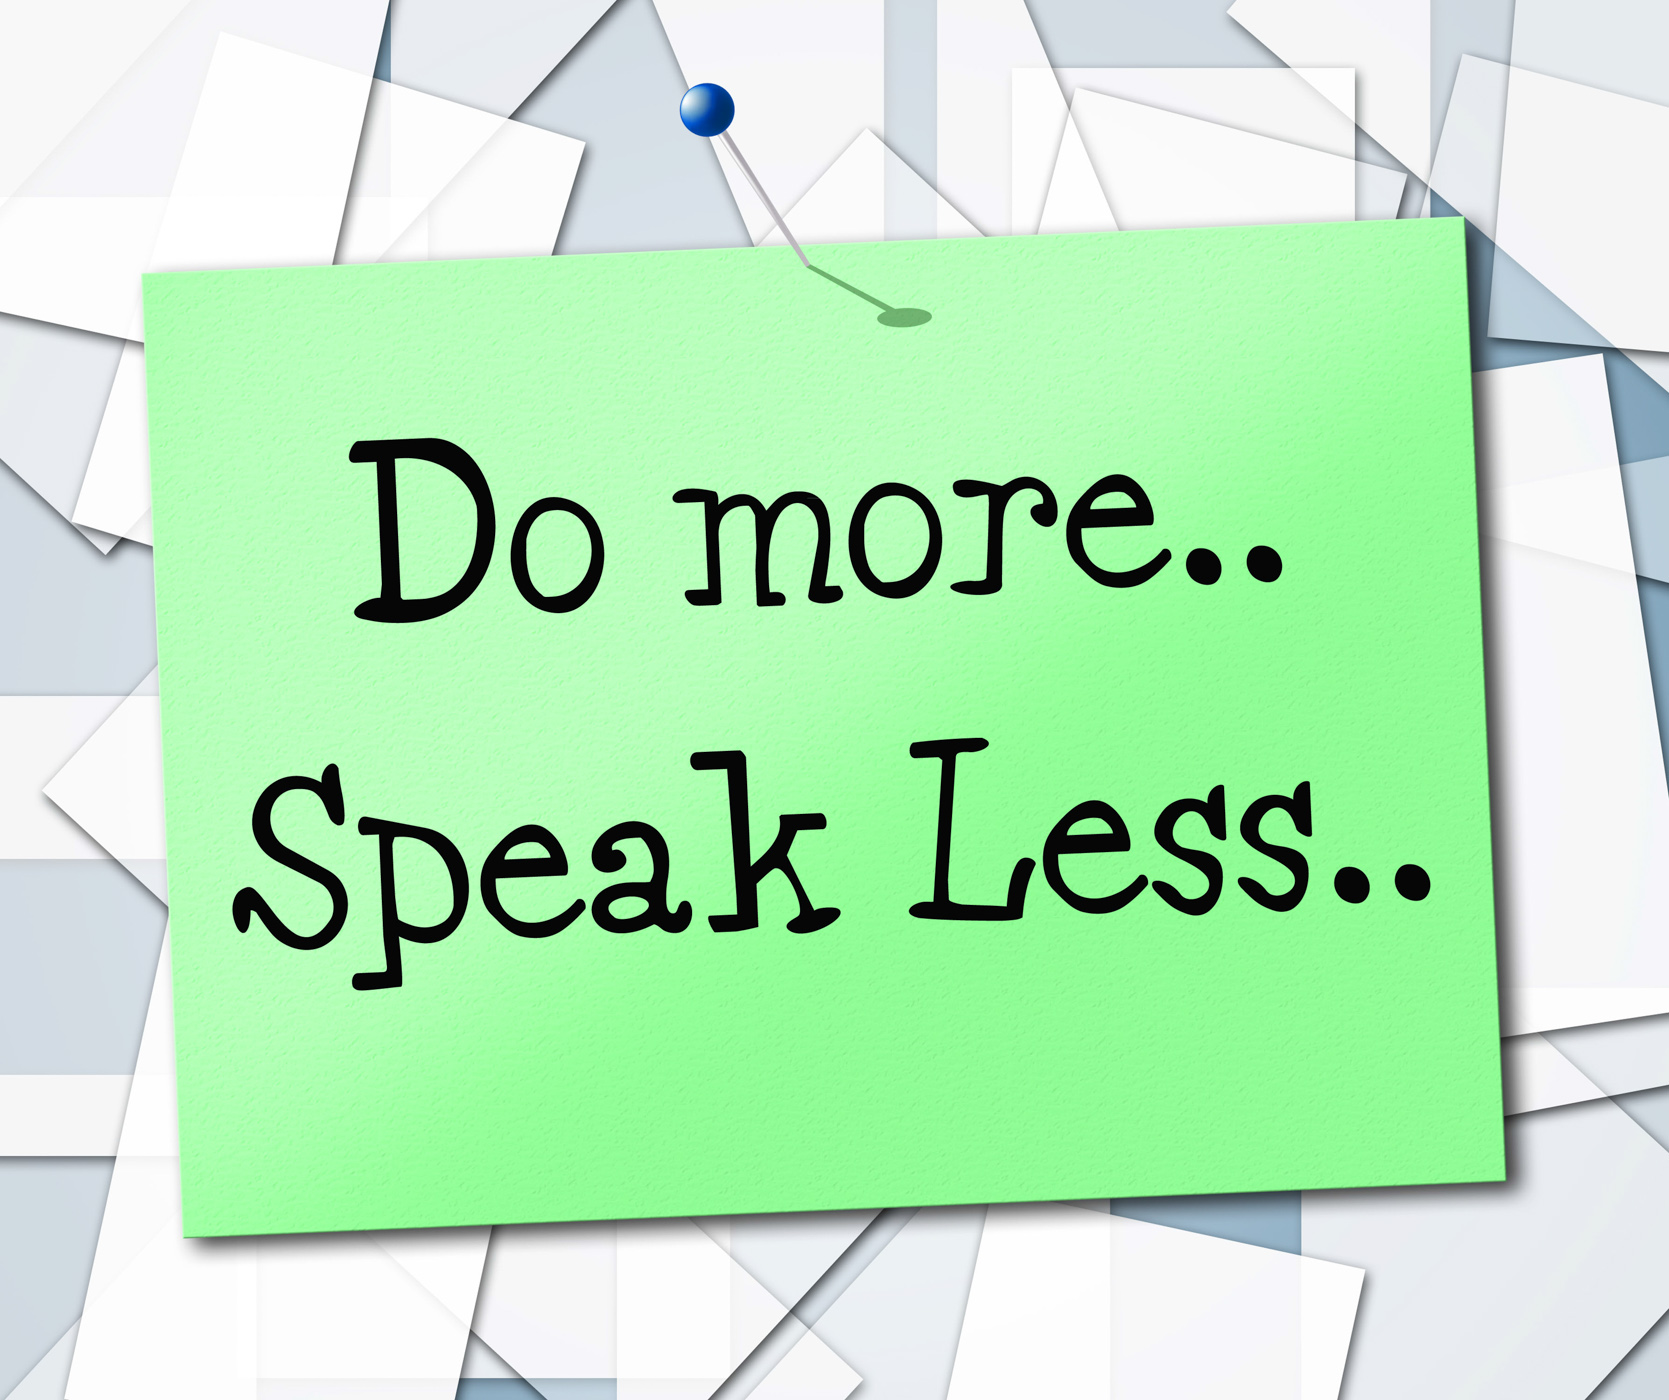 Speak less indicates do more and act photo